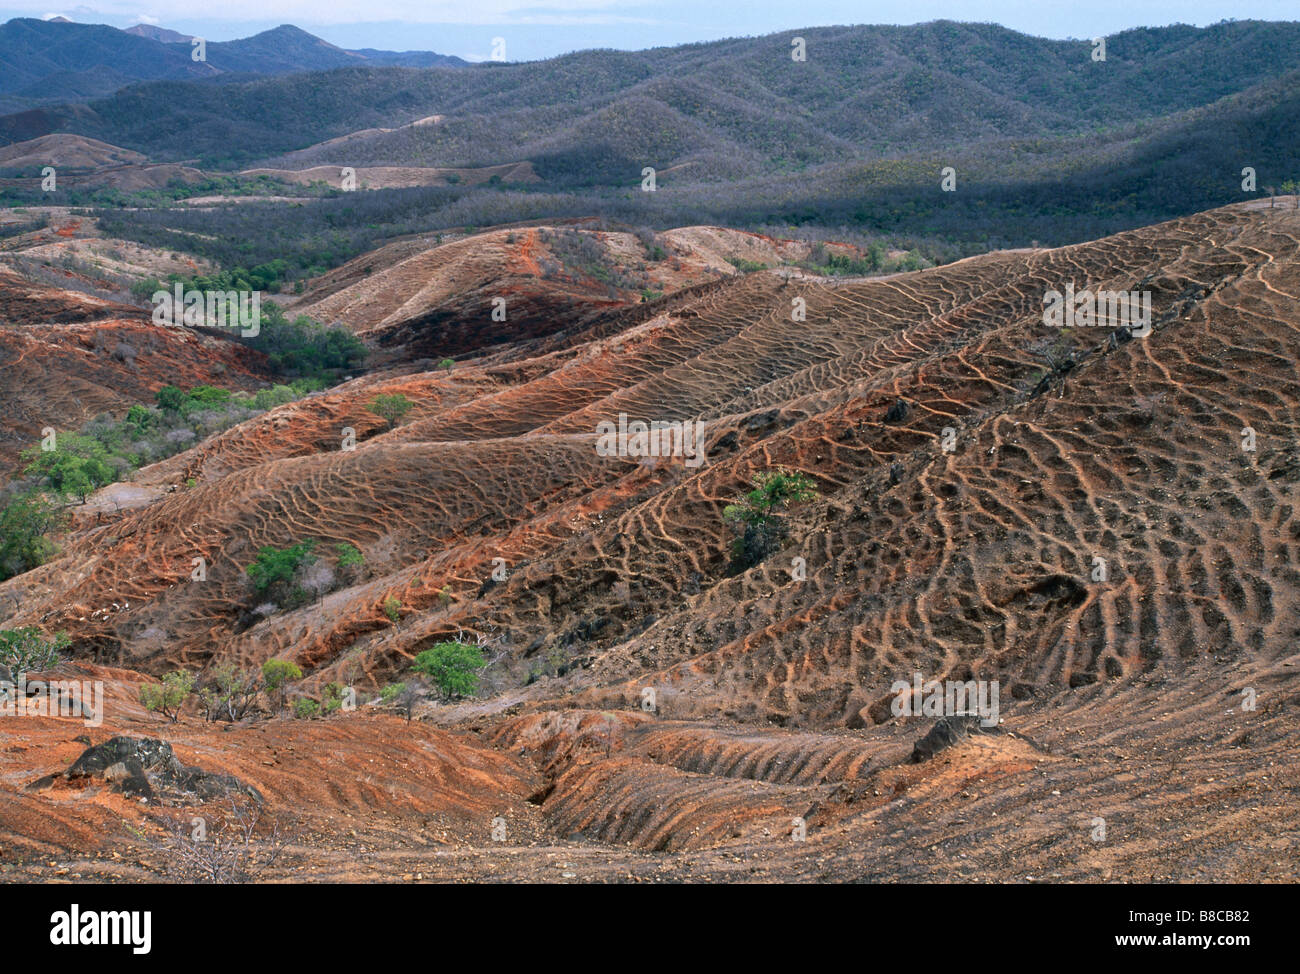 DÉFORESTATION Photo Stock